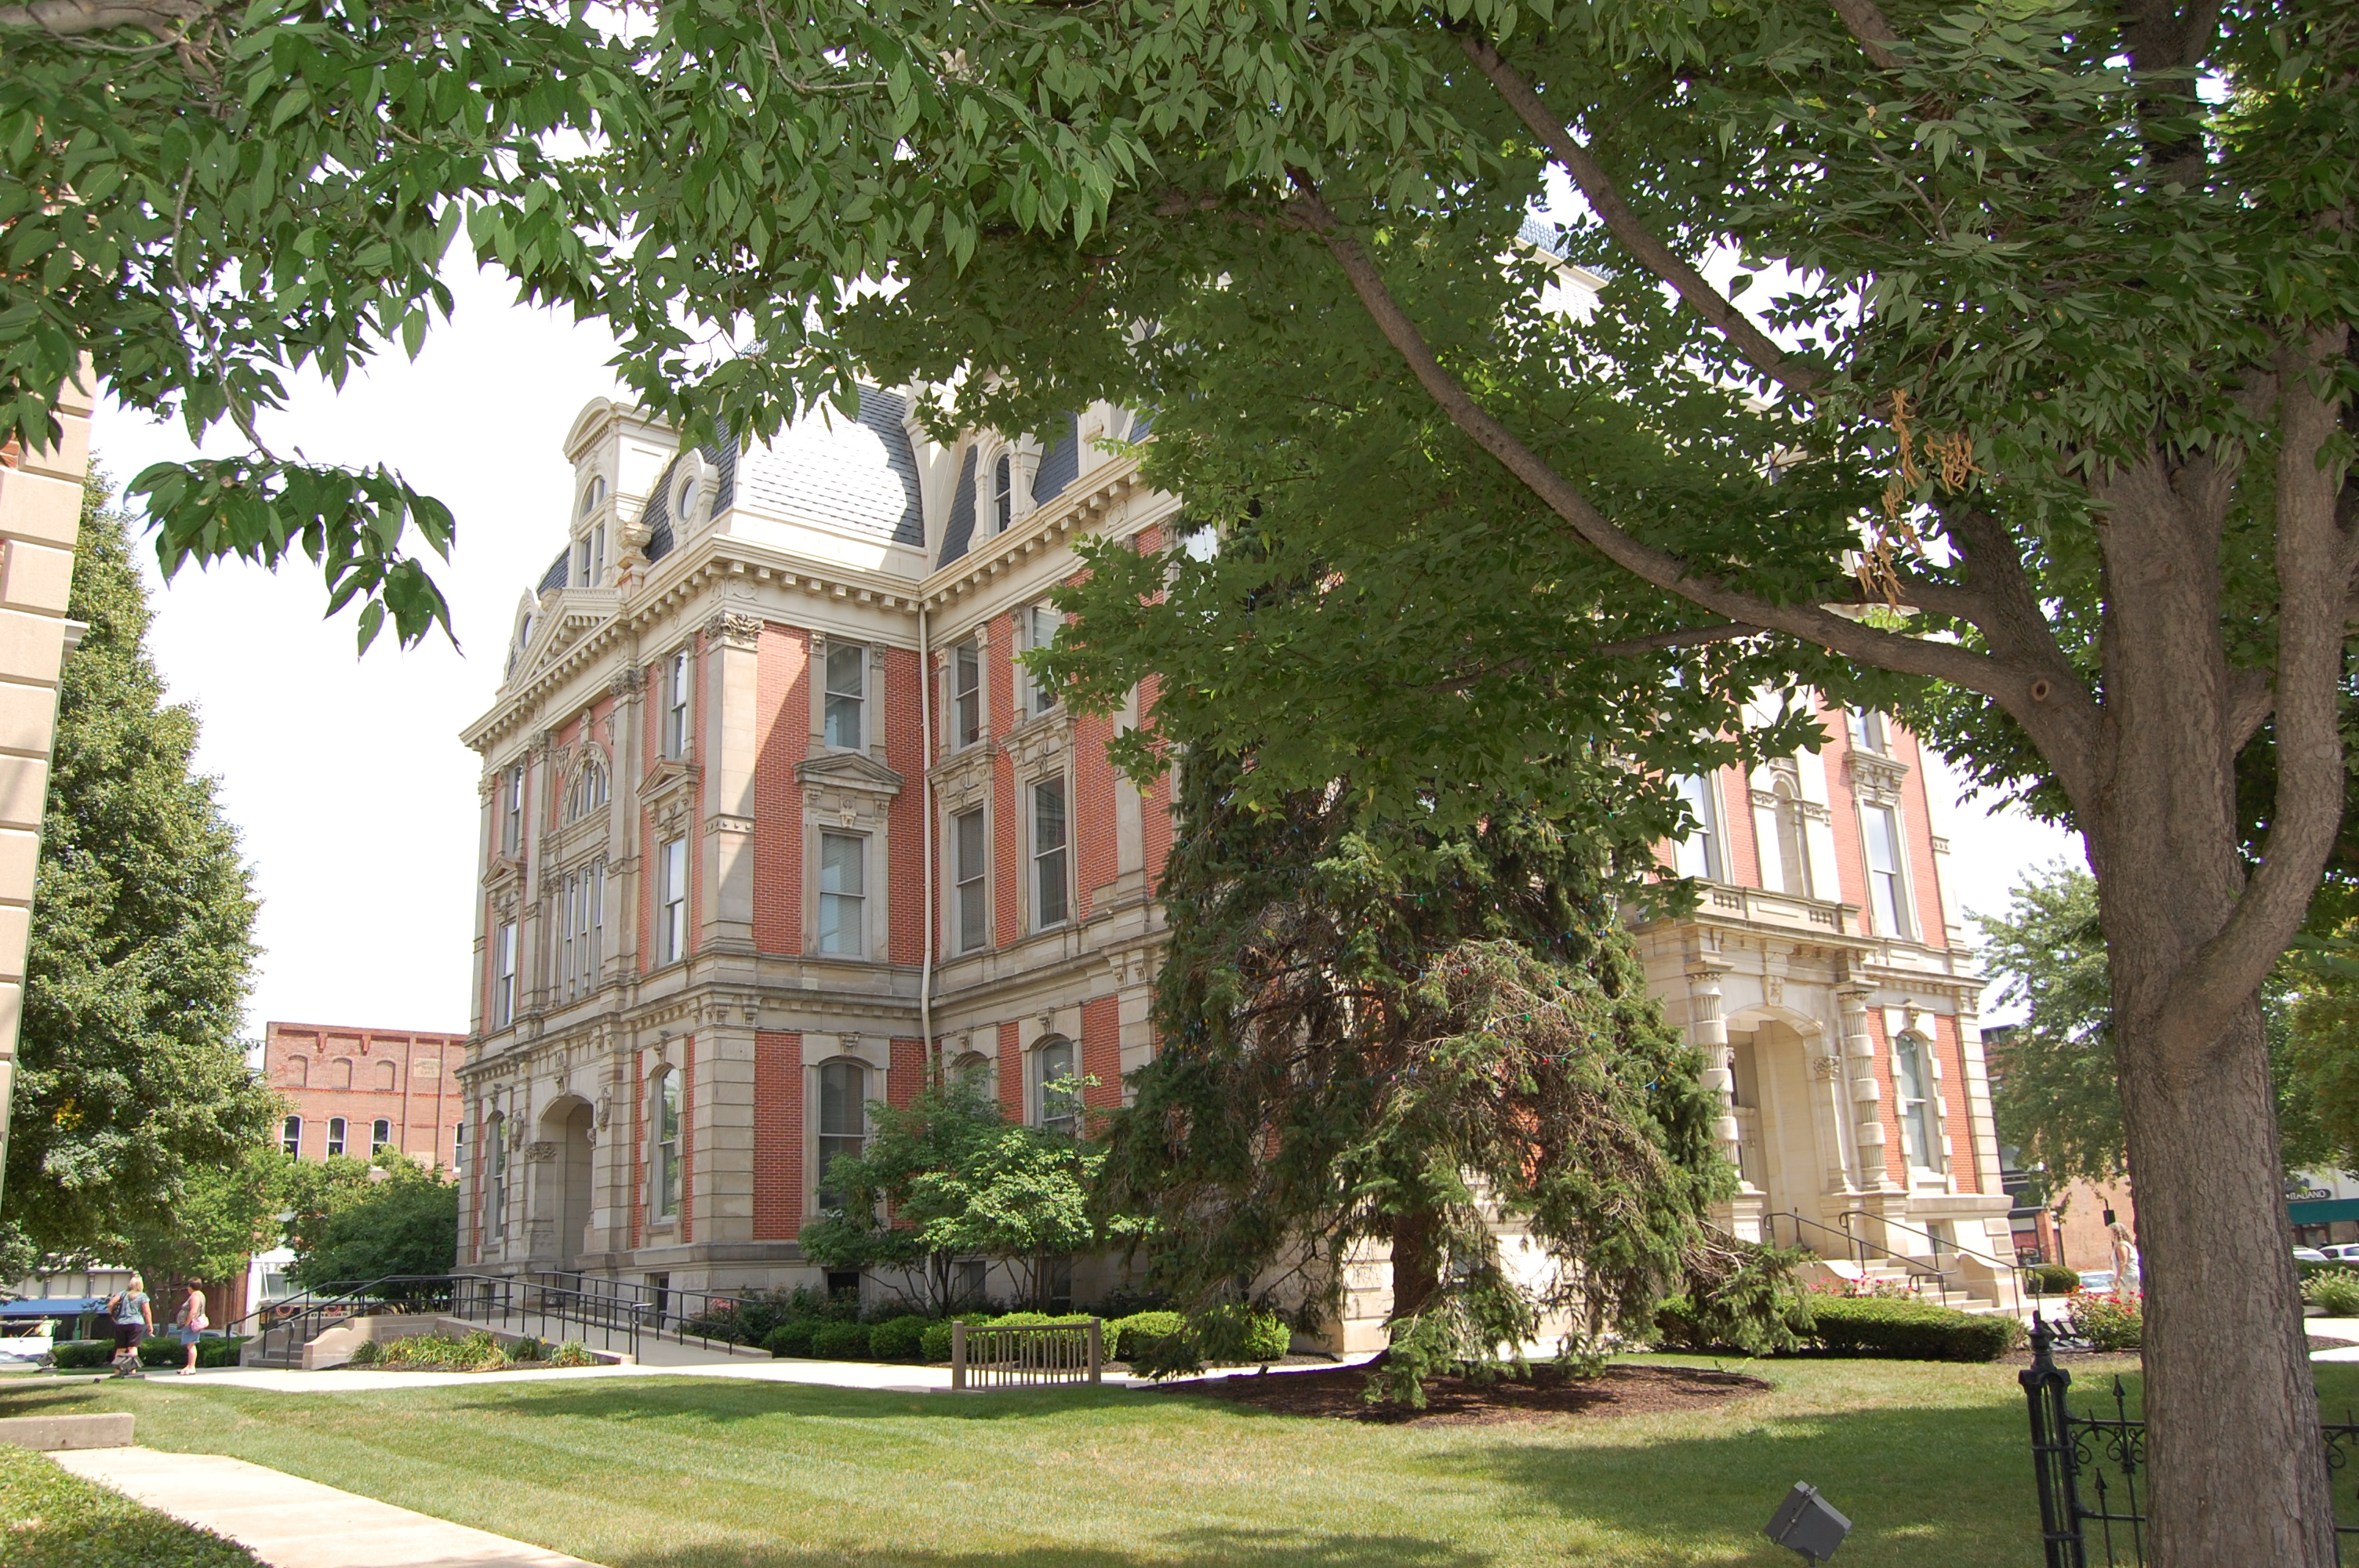 Hamilton County Court House